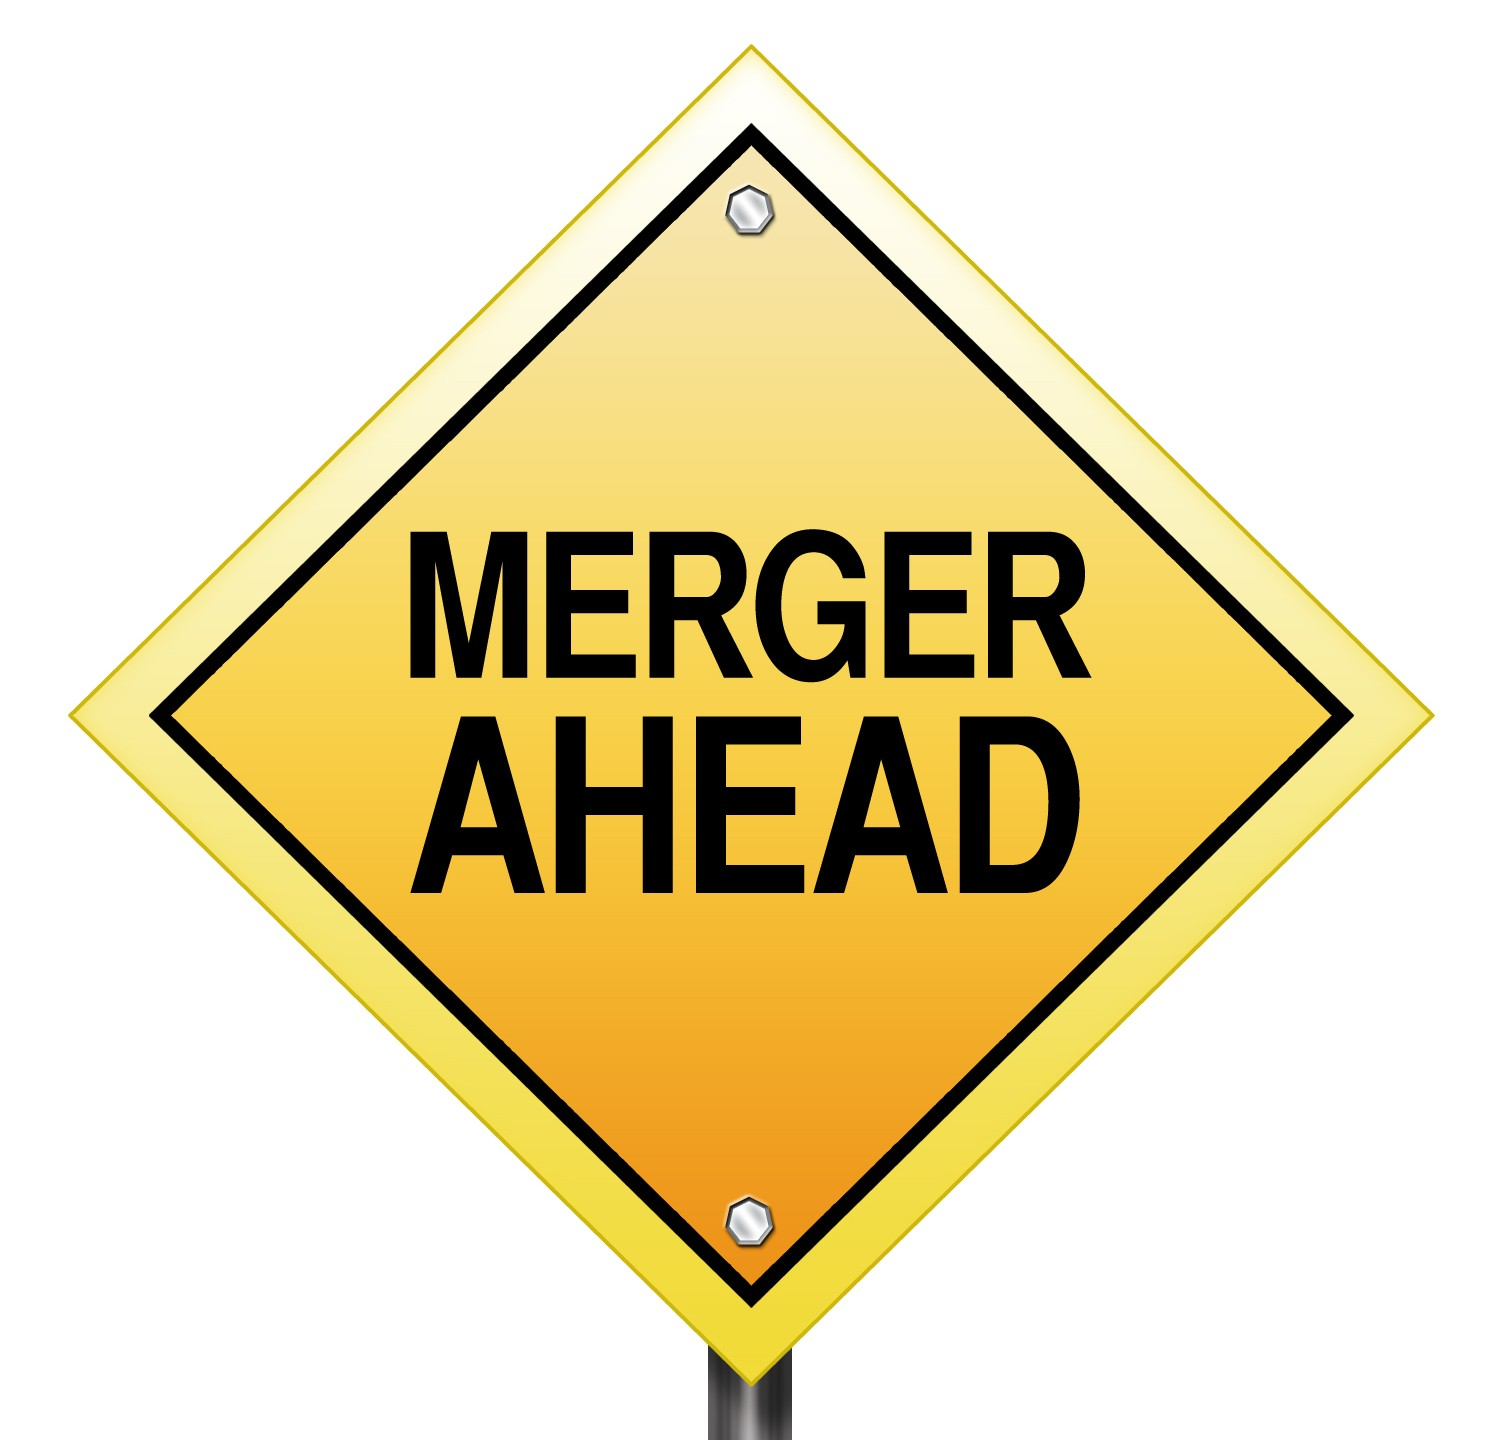 Merger ahead sign acquisition